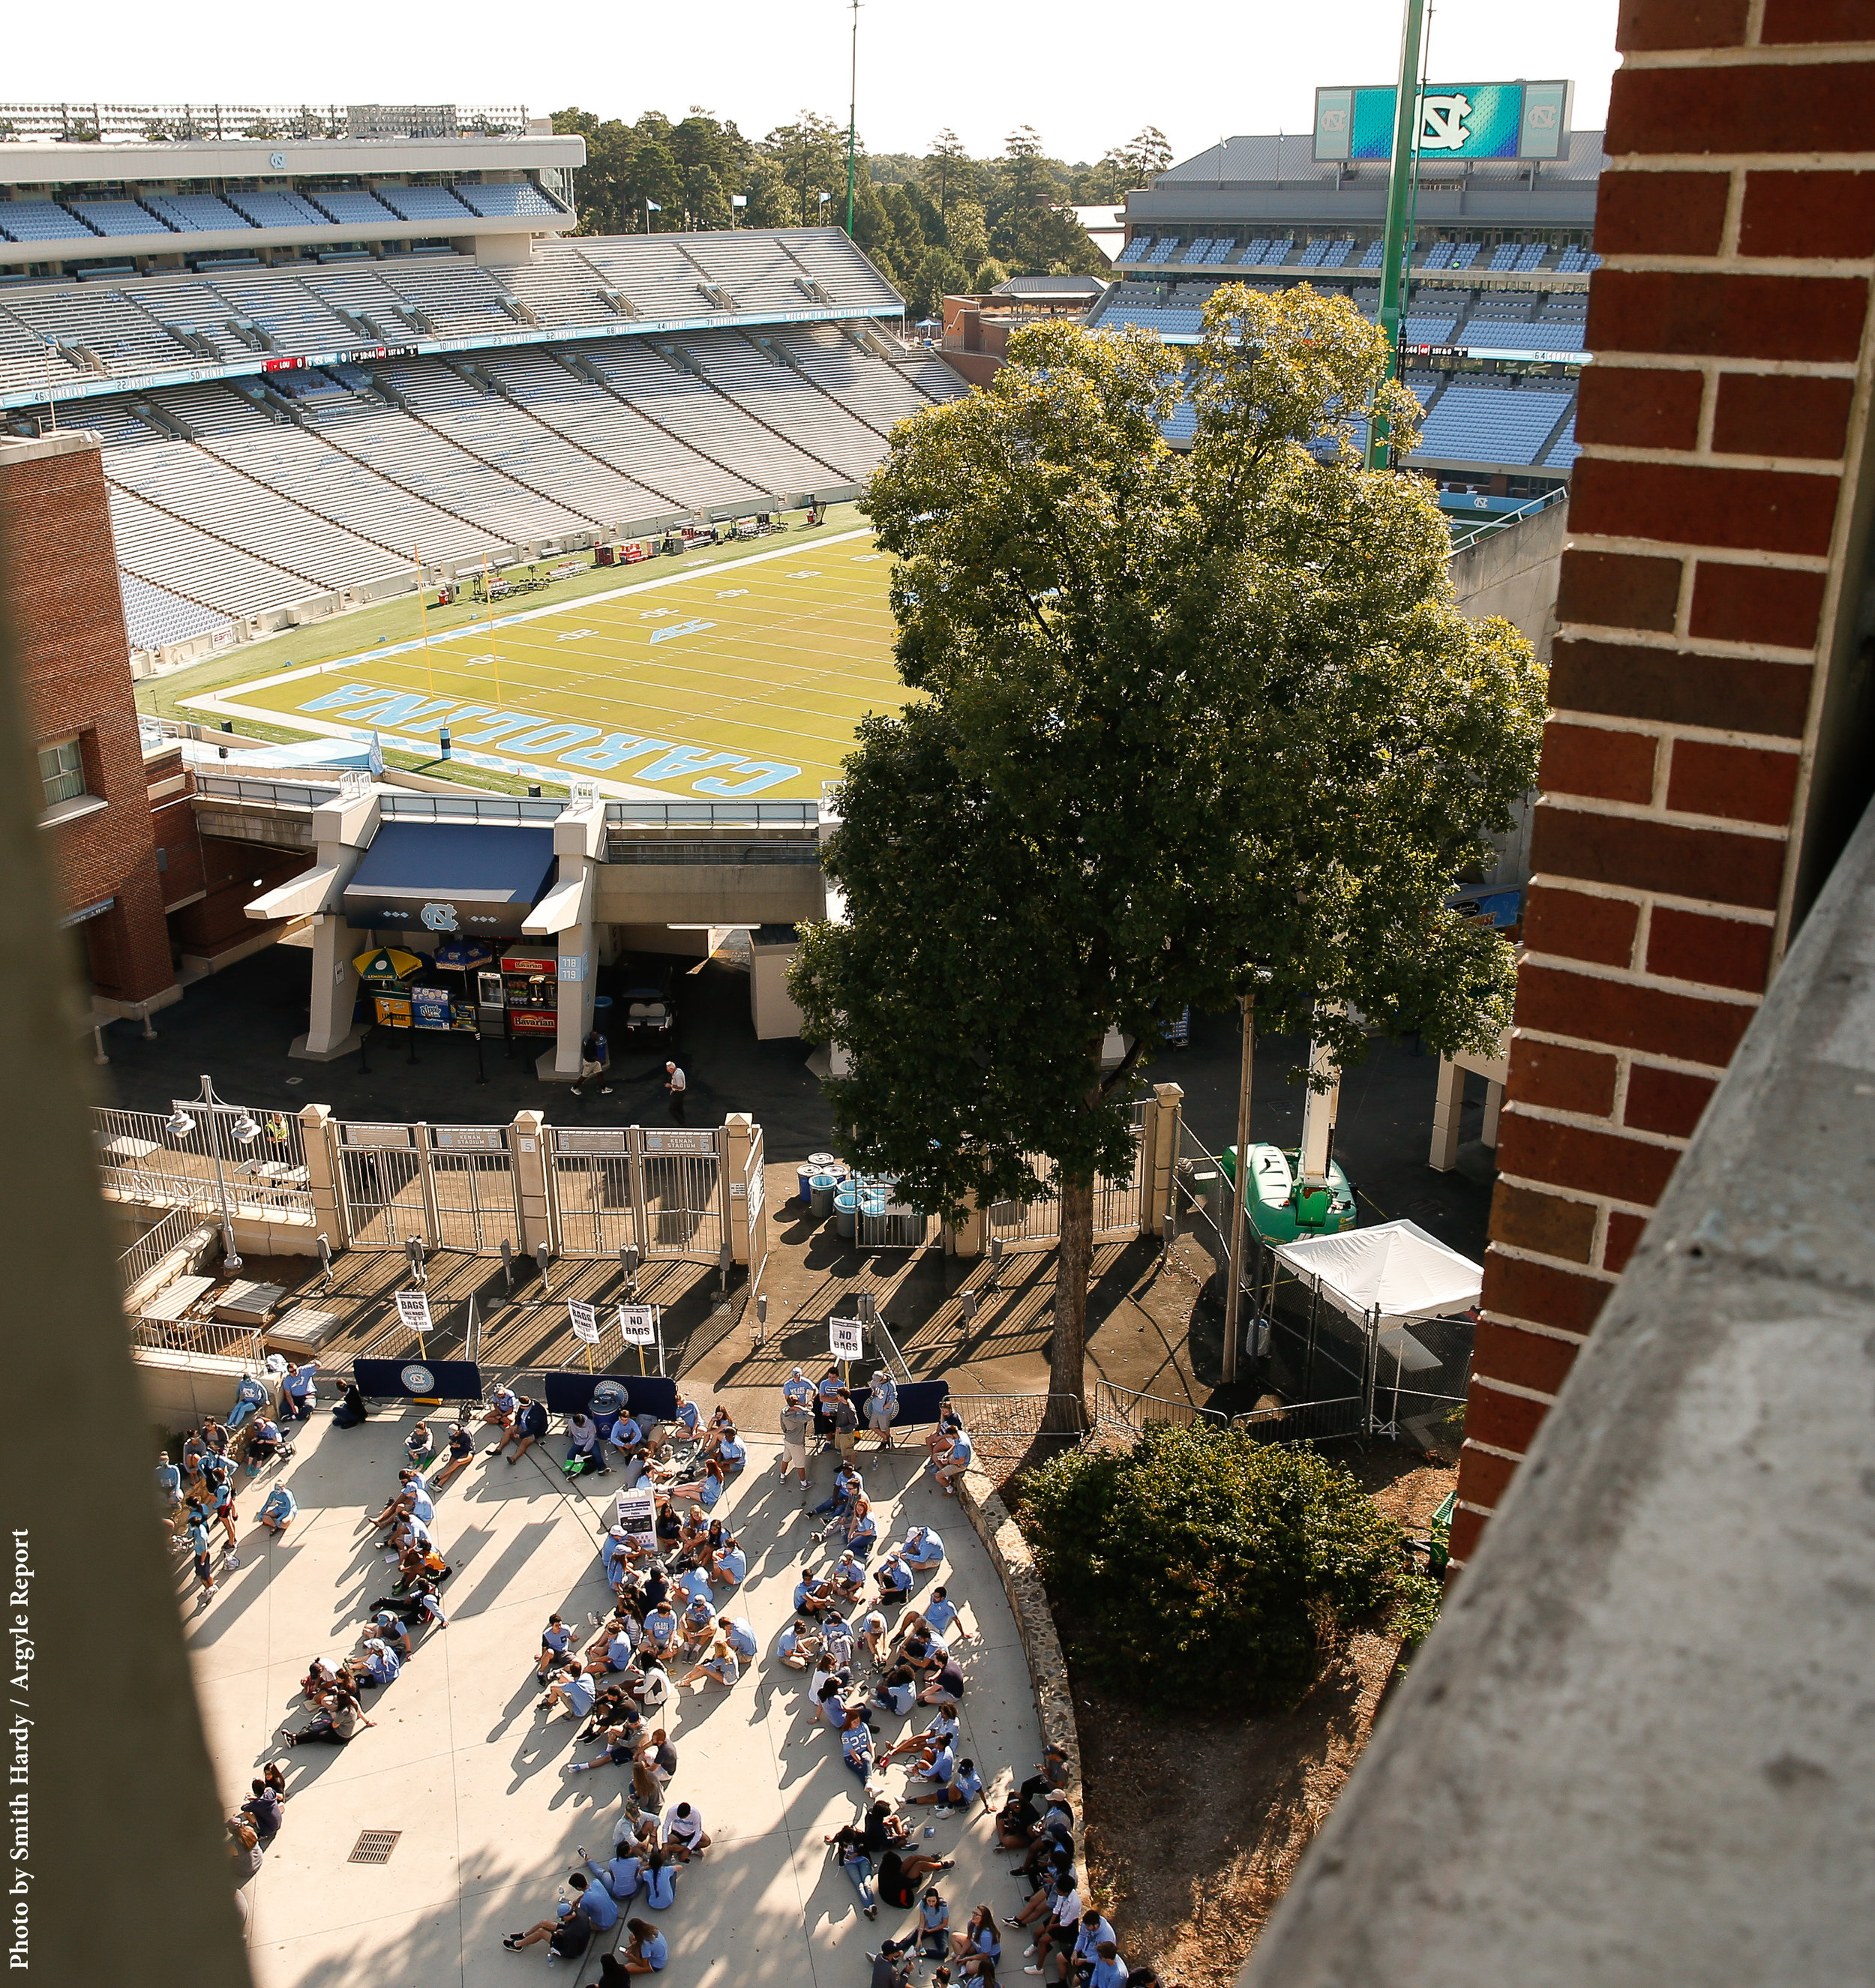 Tarheels vs Cards Football 2017 (8 of 11).jpg